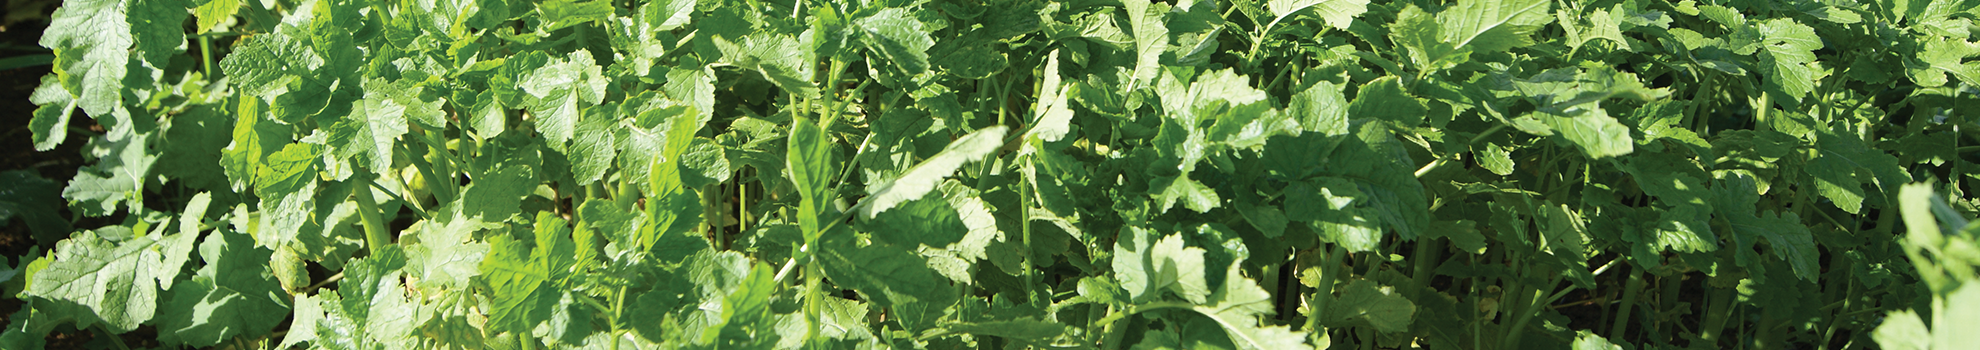 Soil health plants and crops